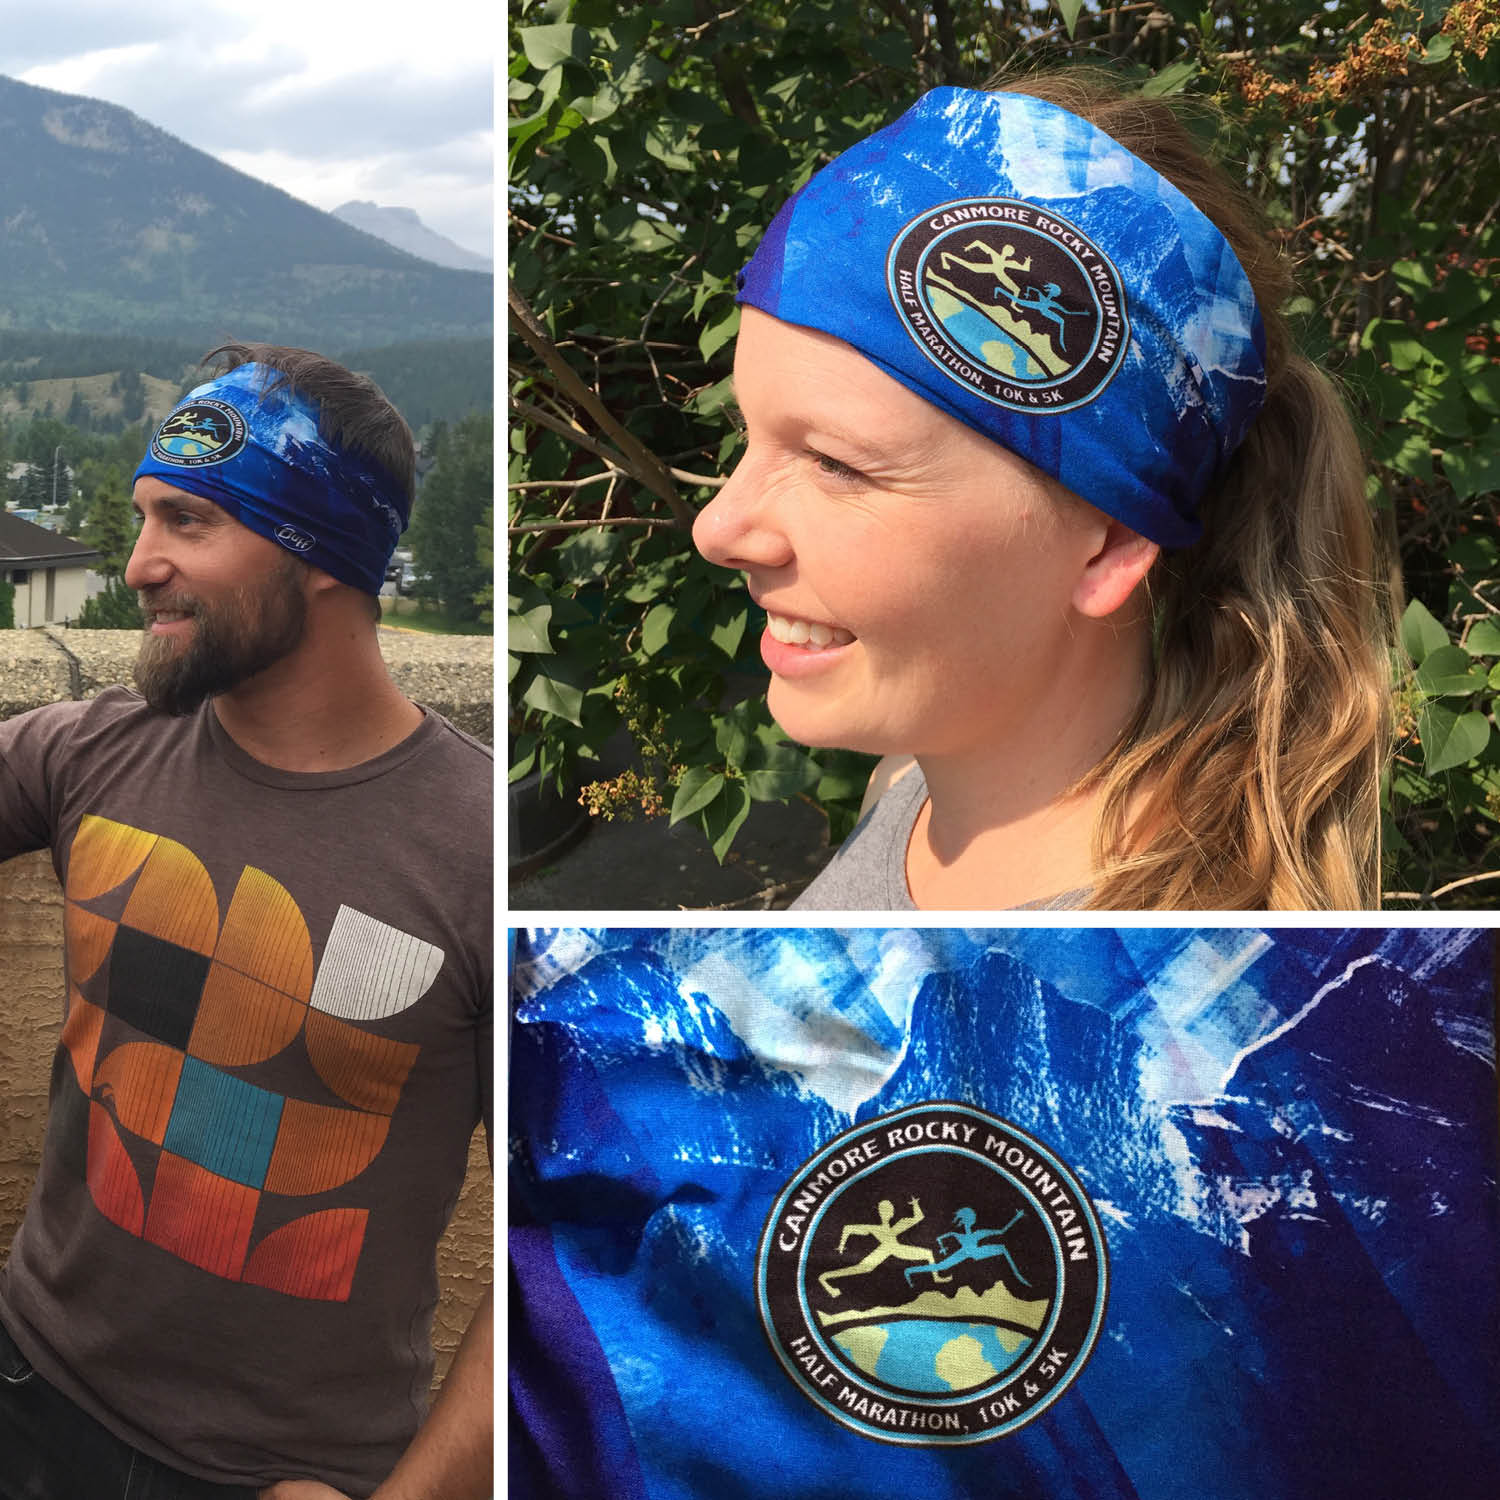 All registrants will receive a custom Canmore Rocky Mountain Half Marathon BUFF in their race package! (2017 design pictured above)